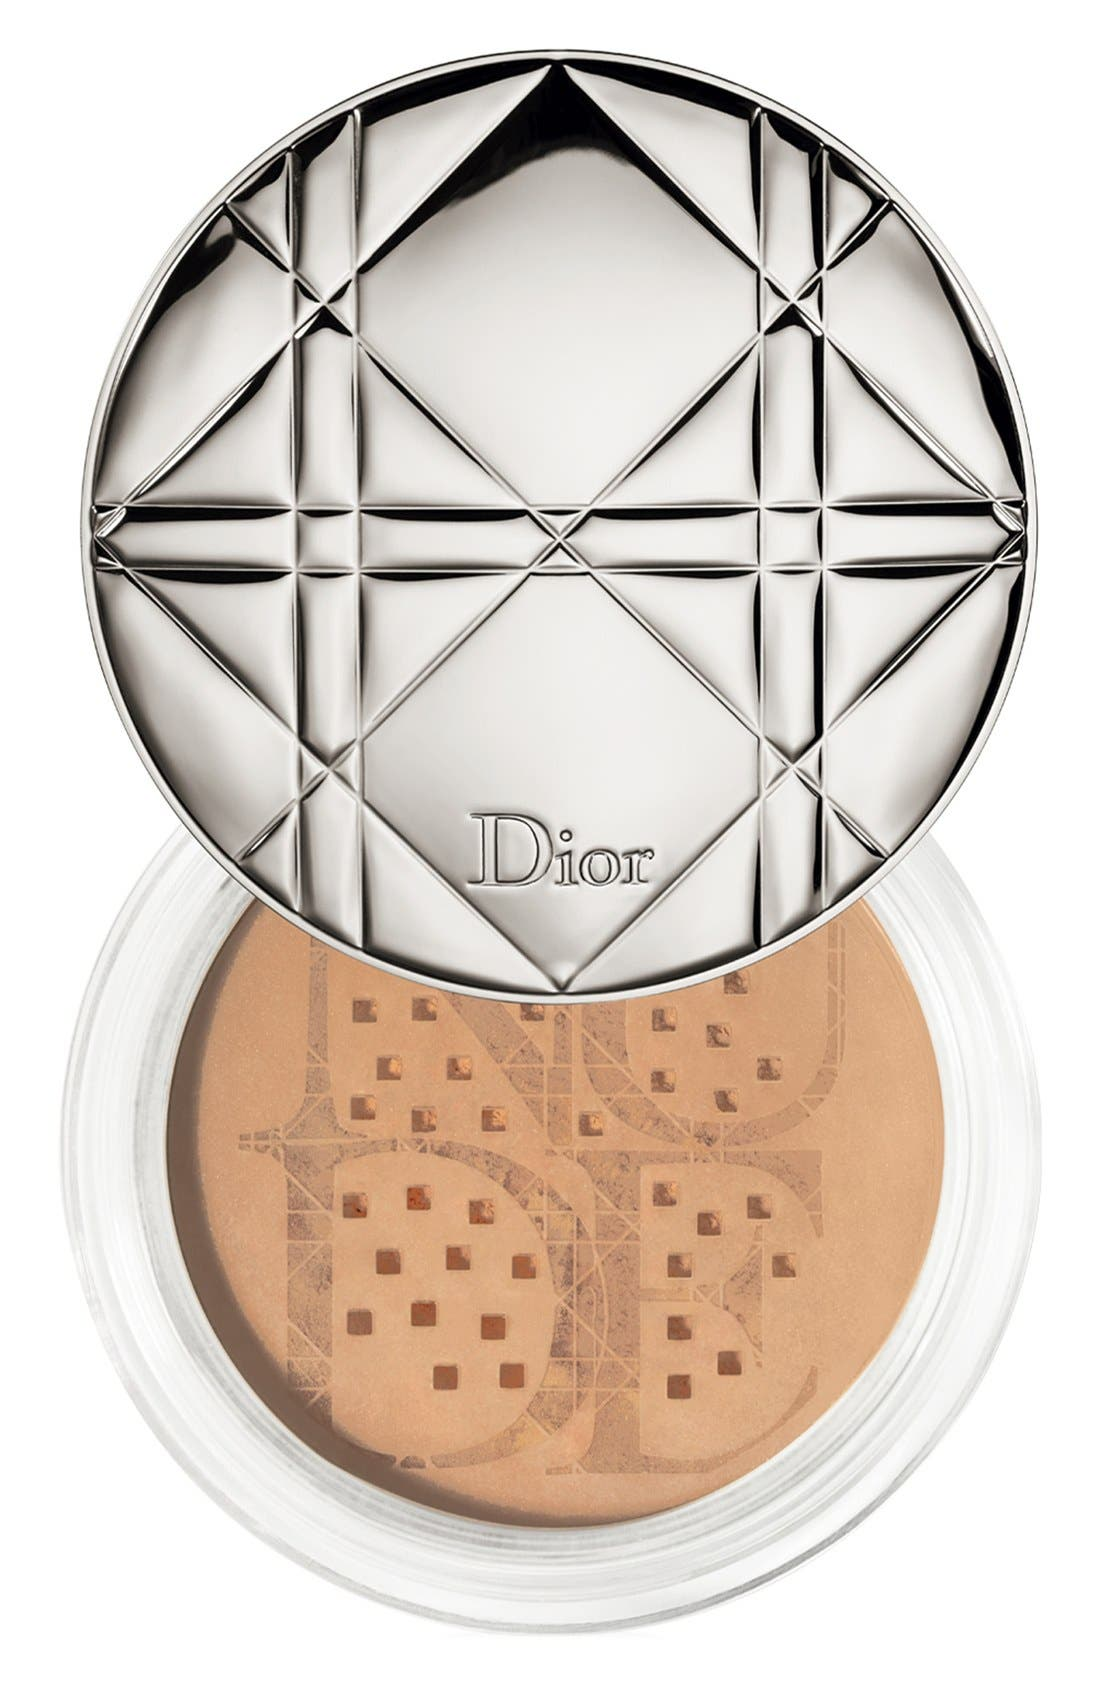 Dior 'Diorskin Nude Air' Healthy Glow Invisible Loose Powder